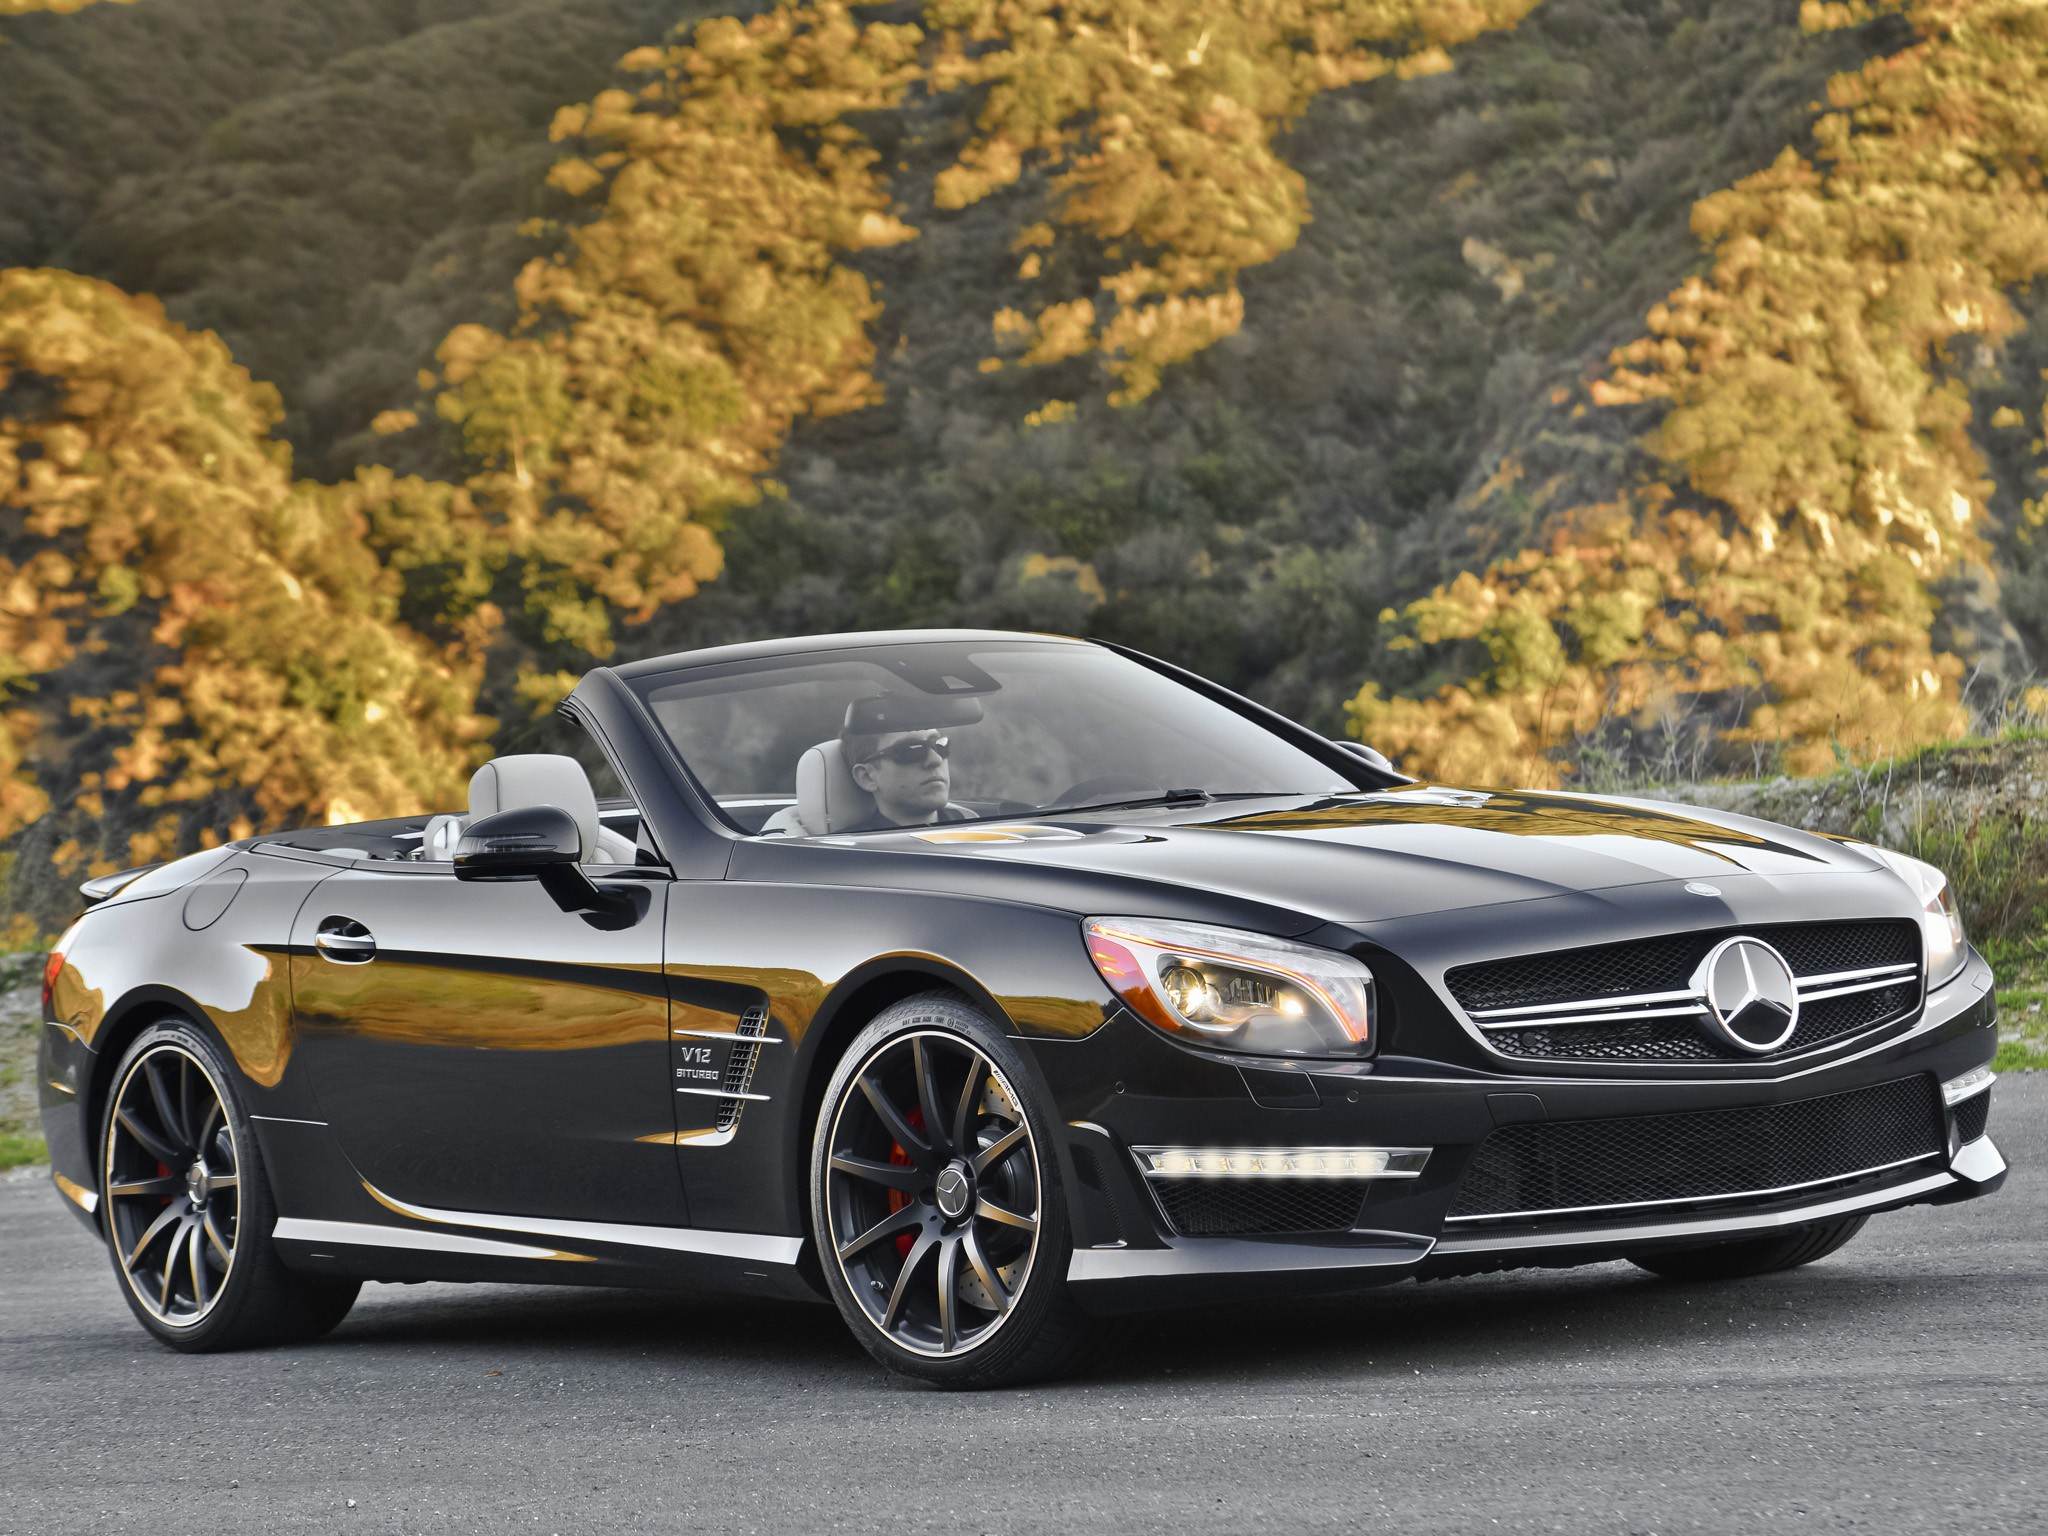 Mercedes benz sl 65 amg r231 specs 2012 2013 2014 for Mercedes benz sl500 amg